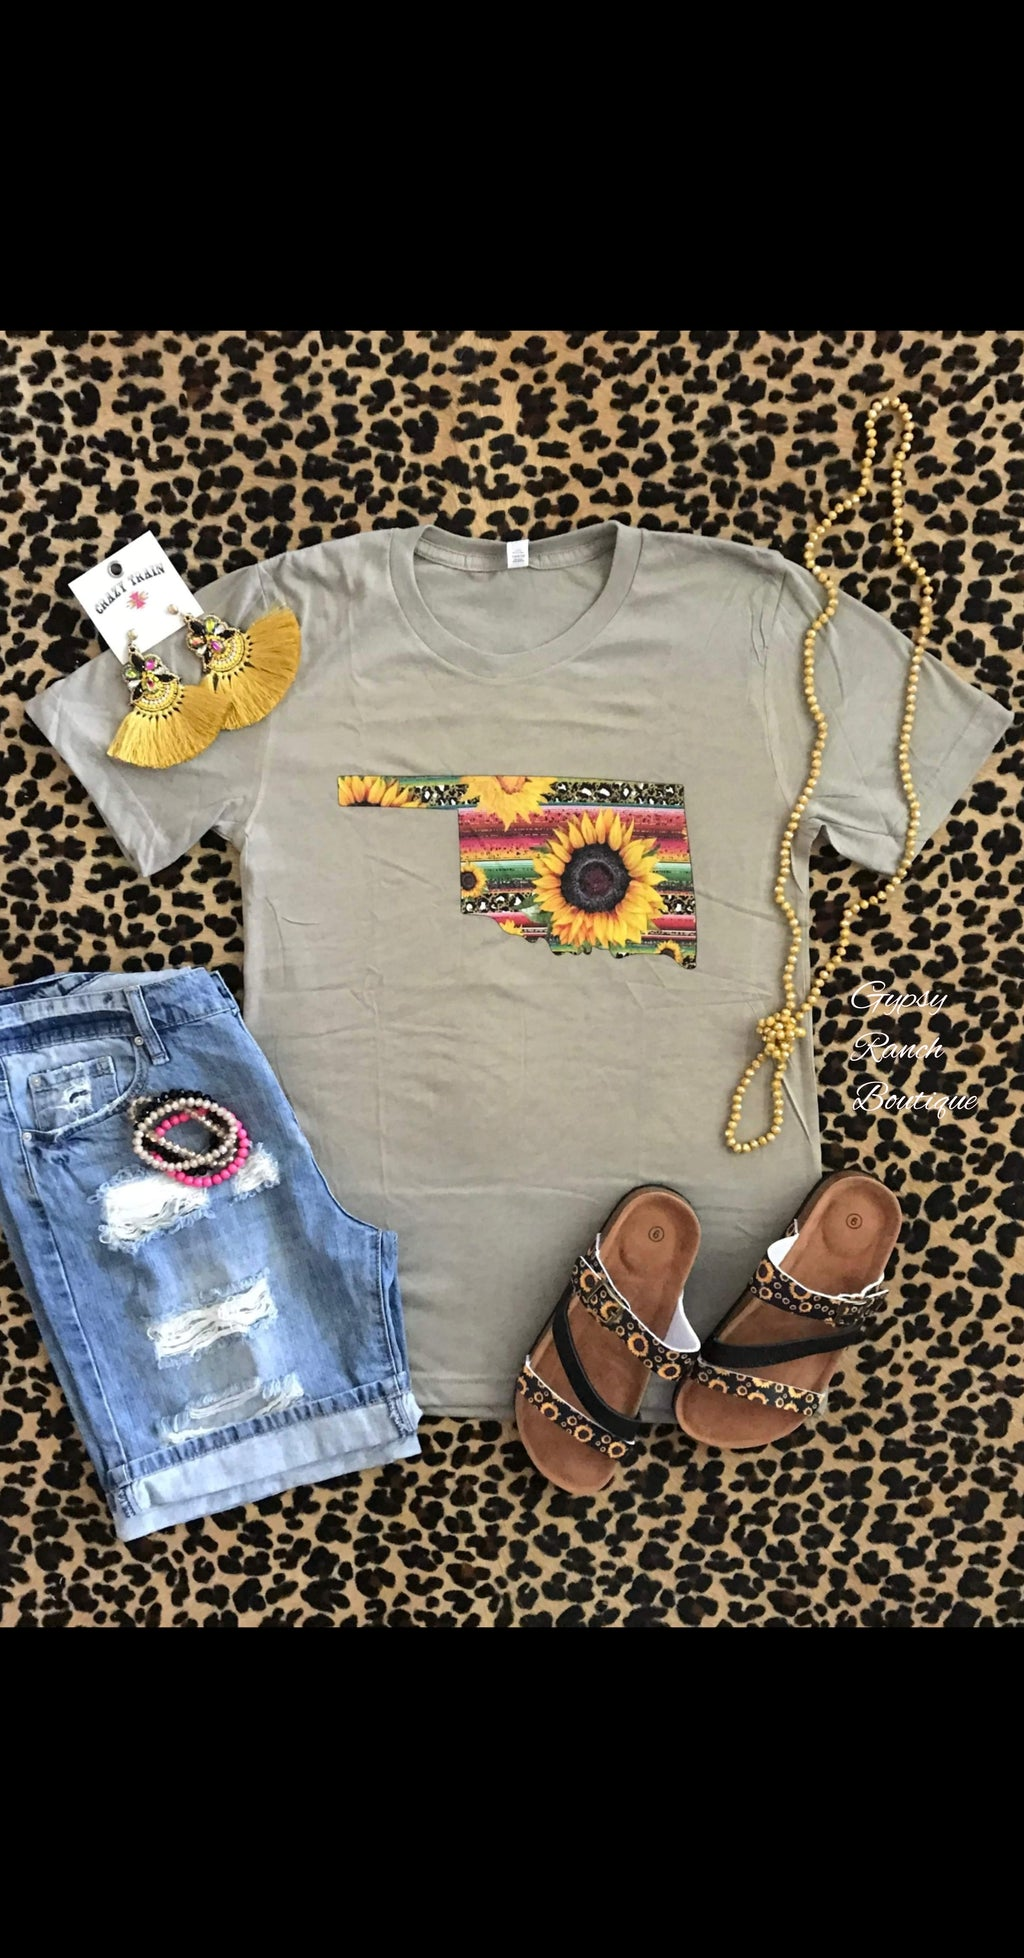 Oklahoma Serape Sunflower Leopard Top - Also in Plus Size